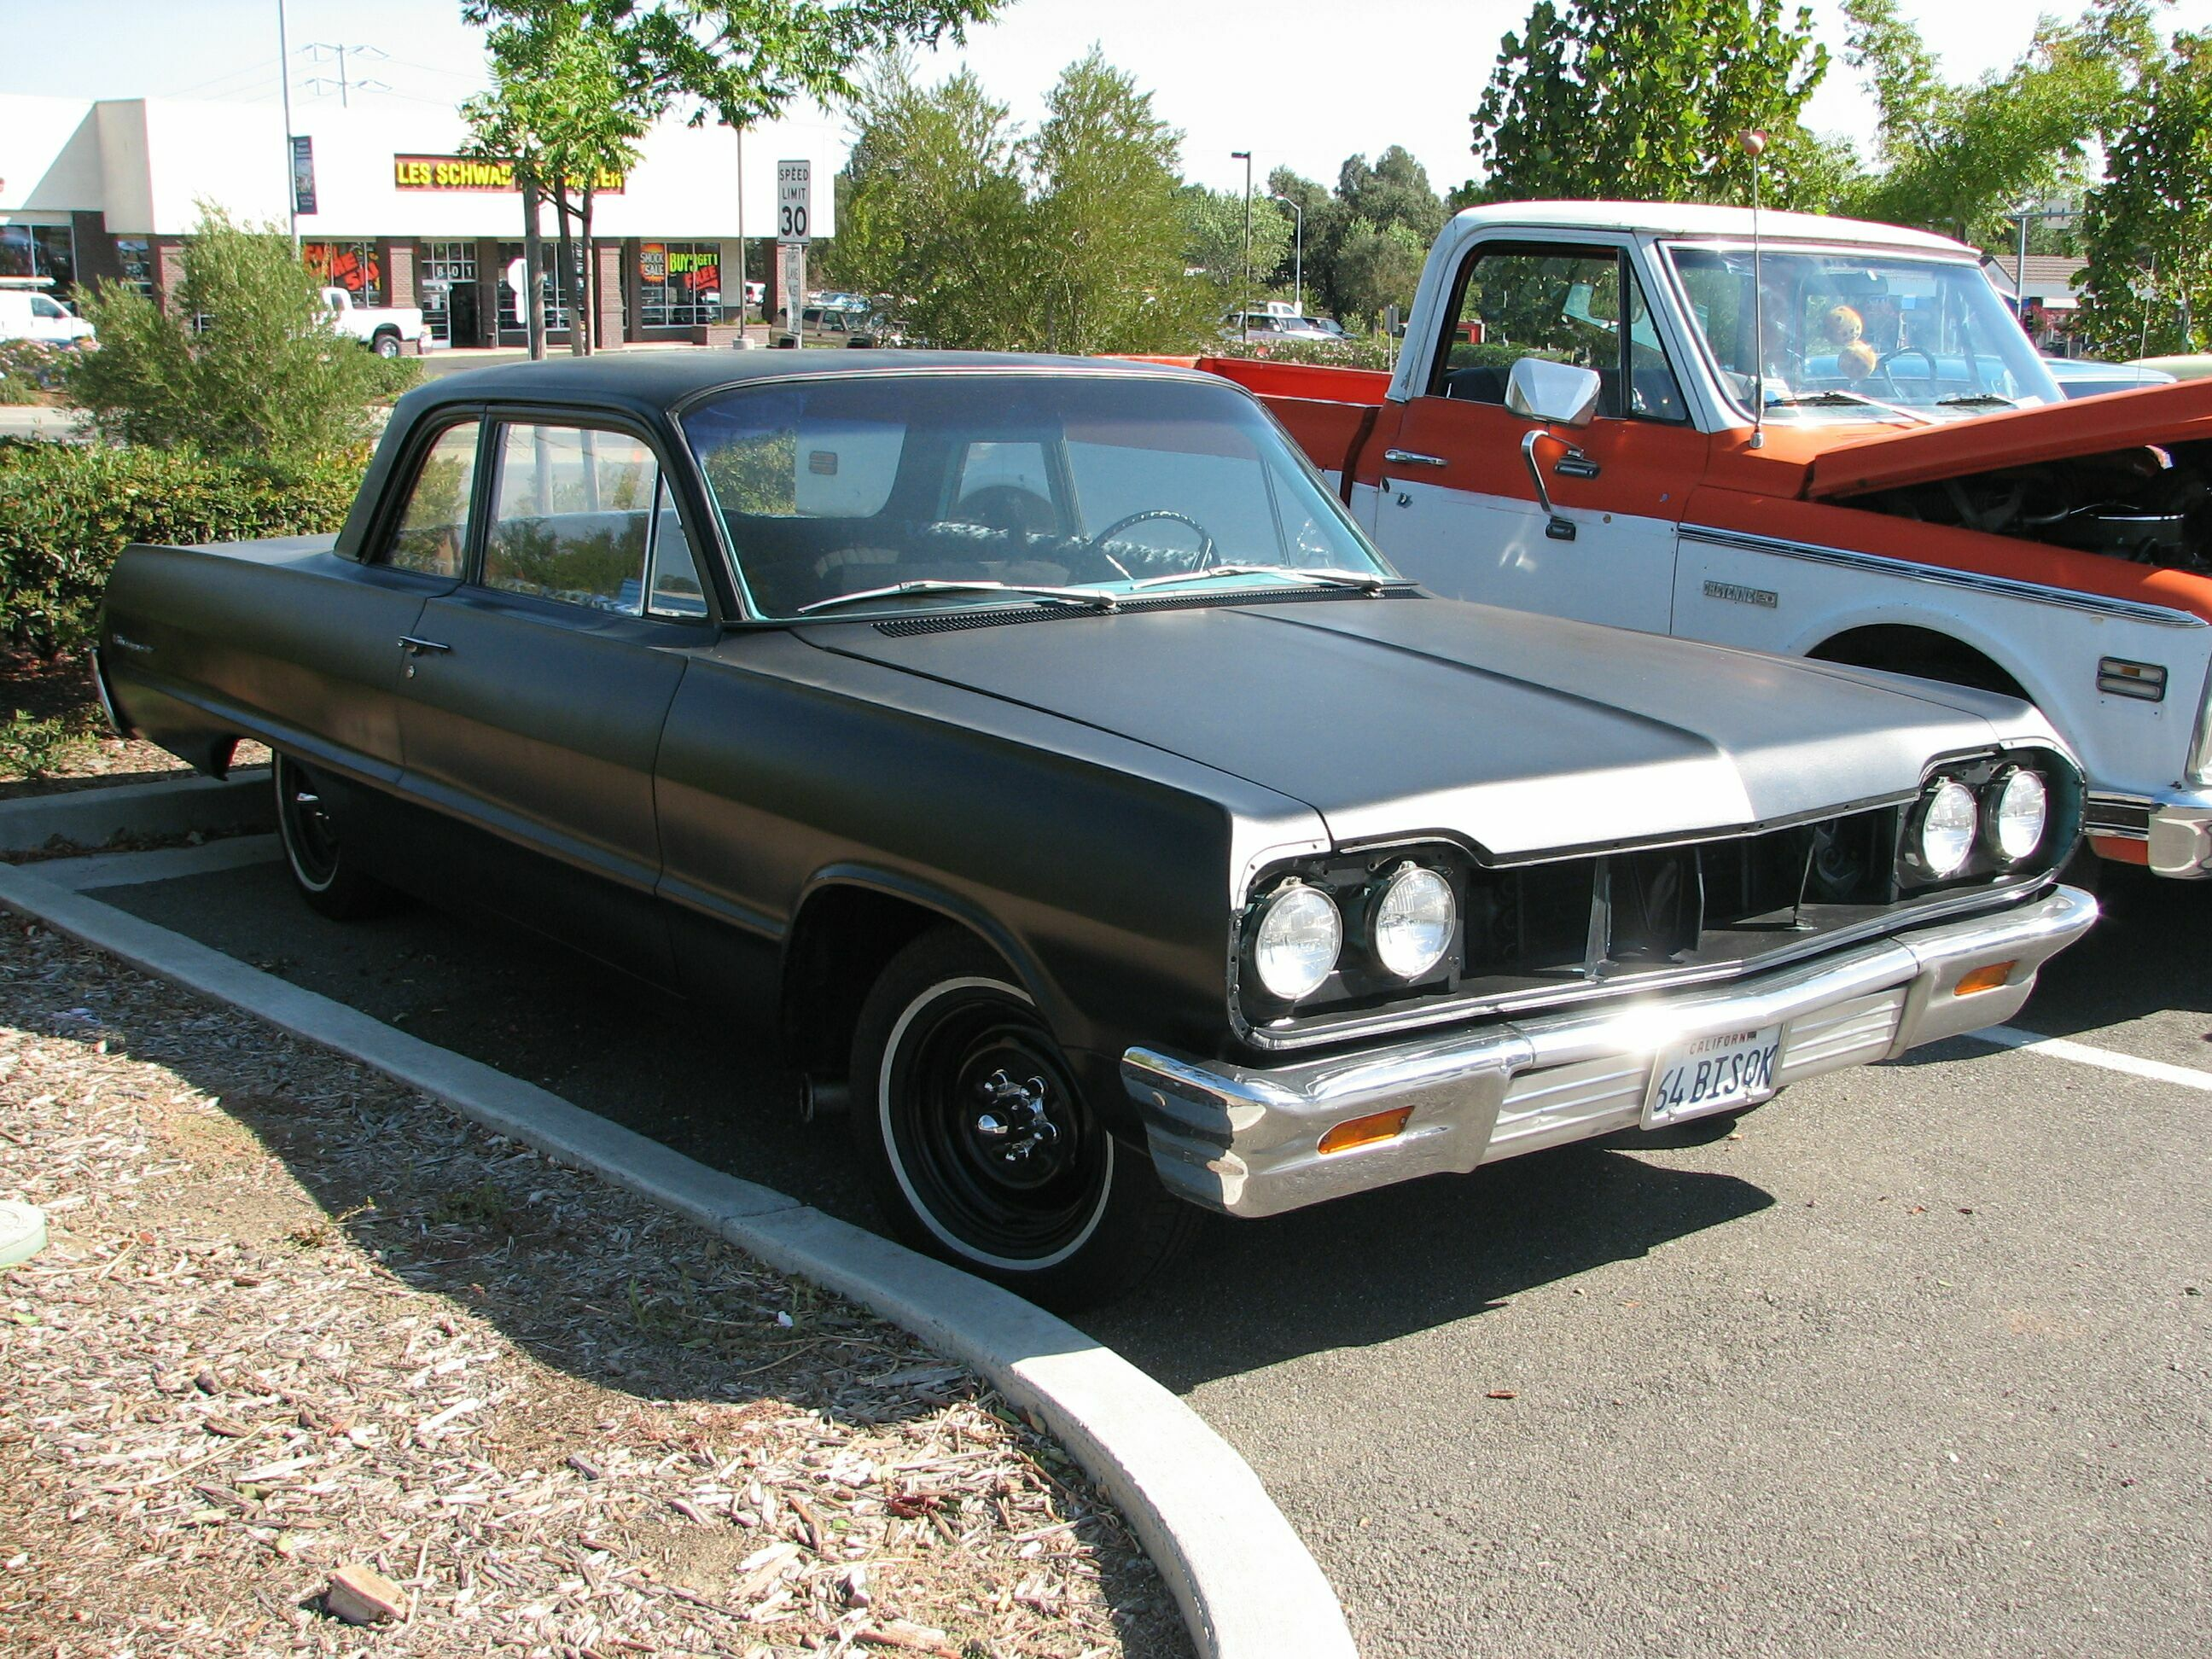 1964 Chevrolet Biscayne '64BISQK' 3 | Flickr - Photo Sharing!